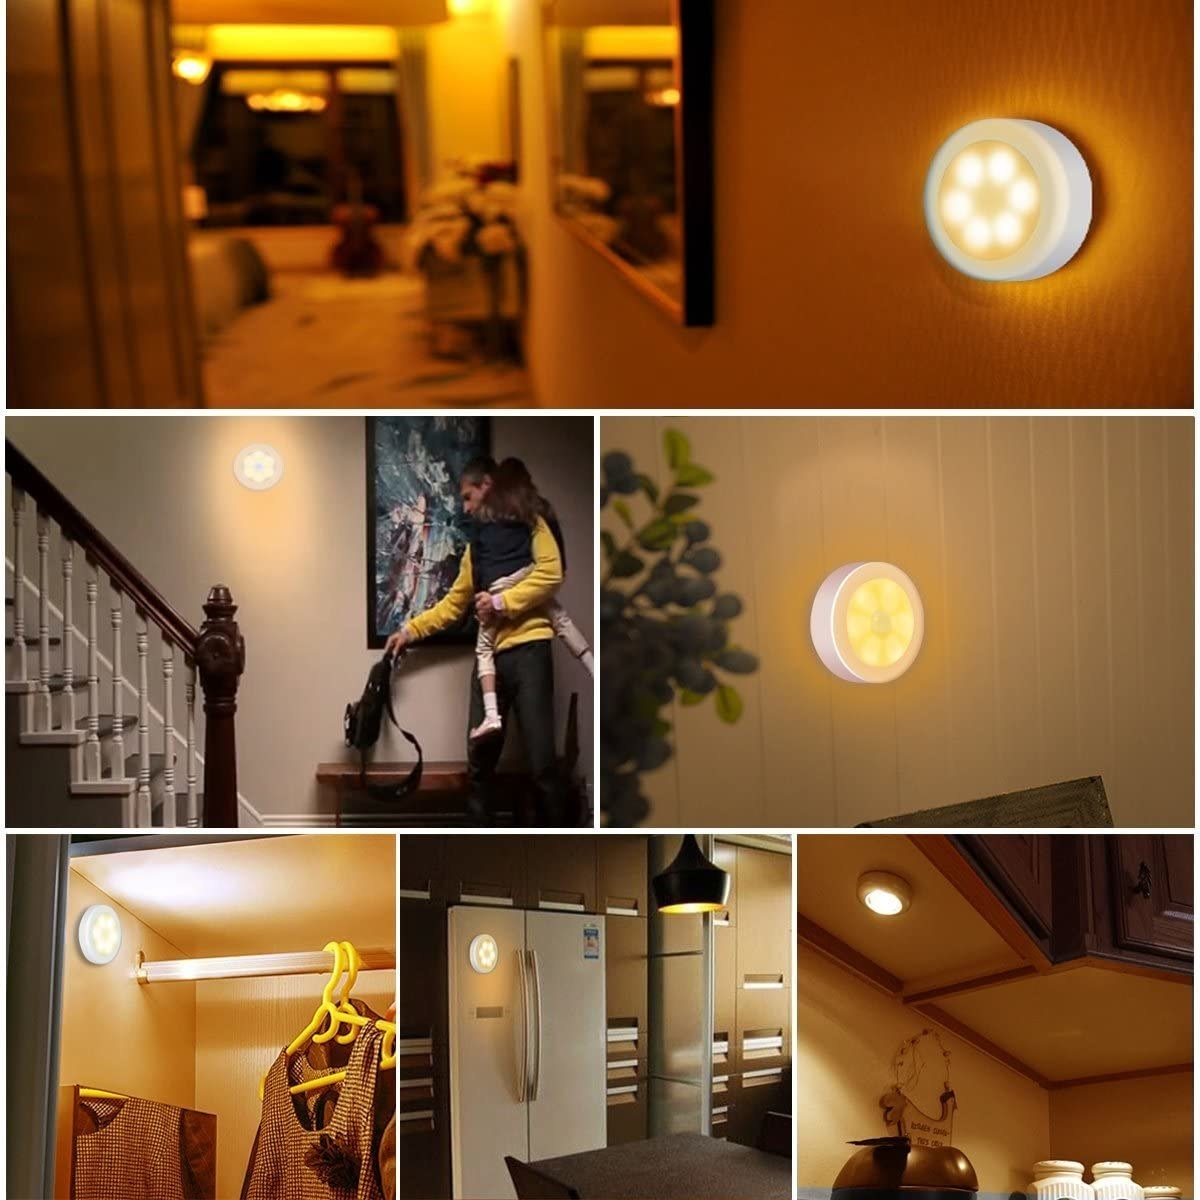 the motion light in various areas including staircase, closet, and wall